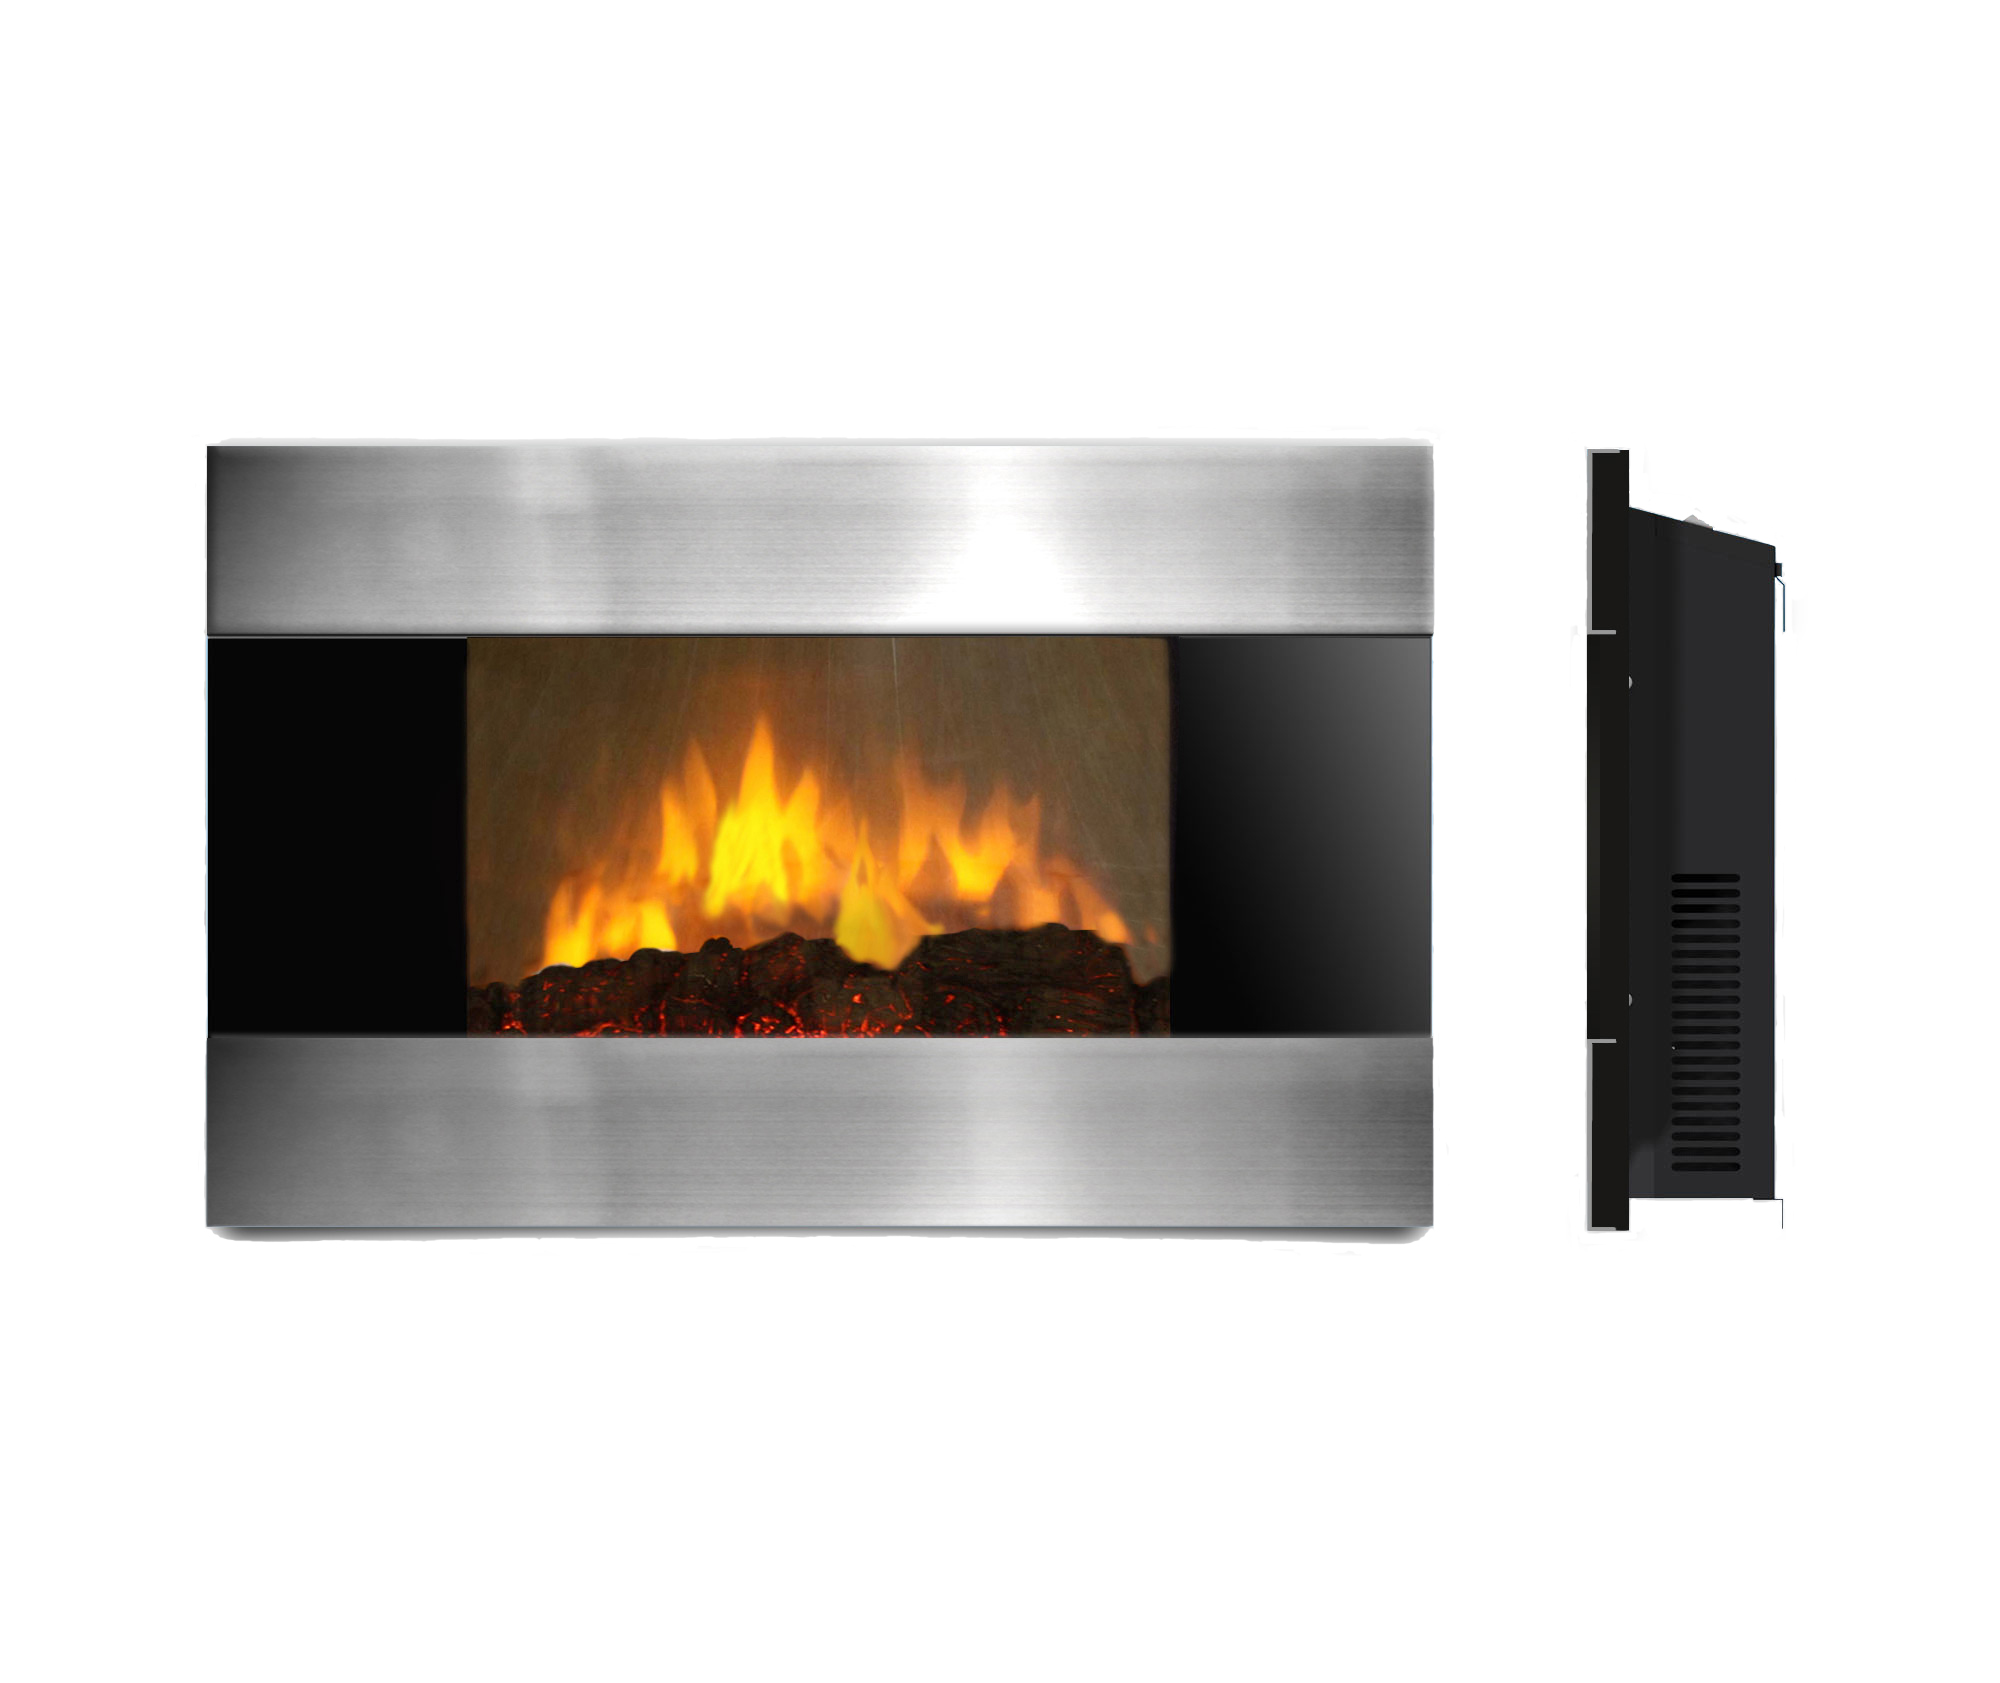 Wall Hanging Fireplace ambionair flame - led wall-mounted fireplace (ef-1510 sl) - home